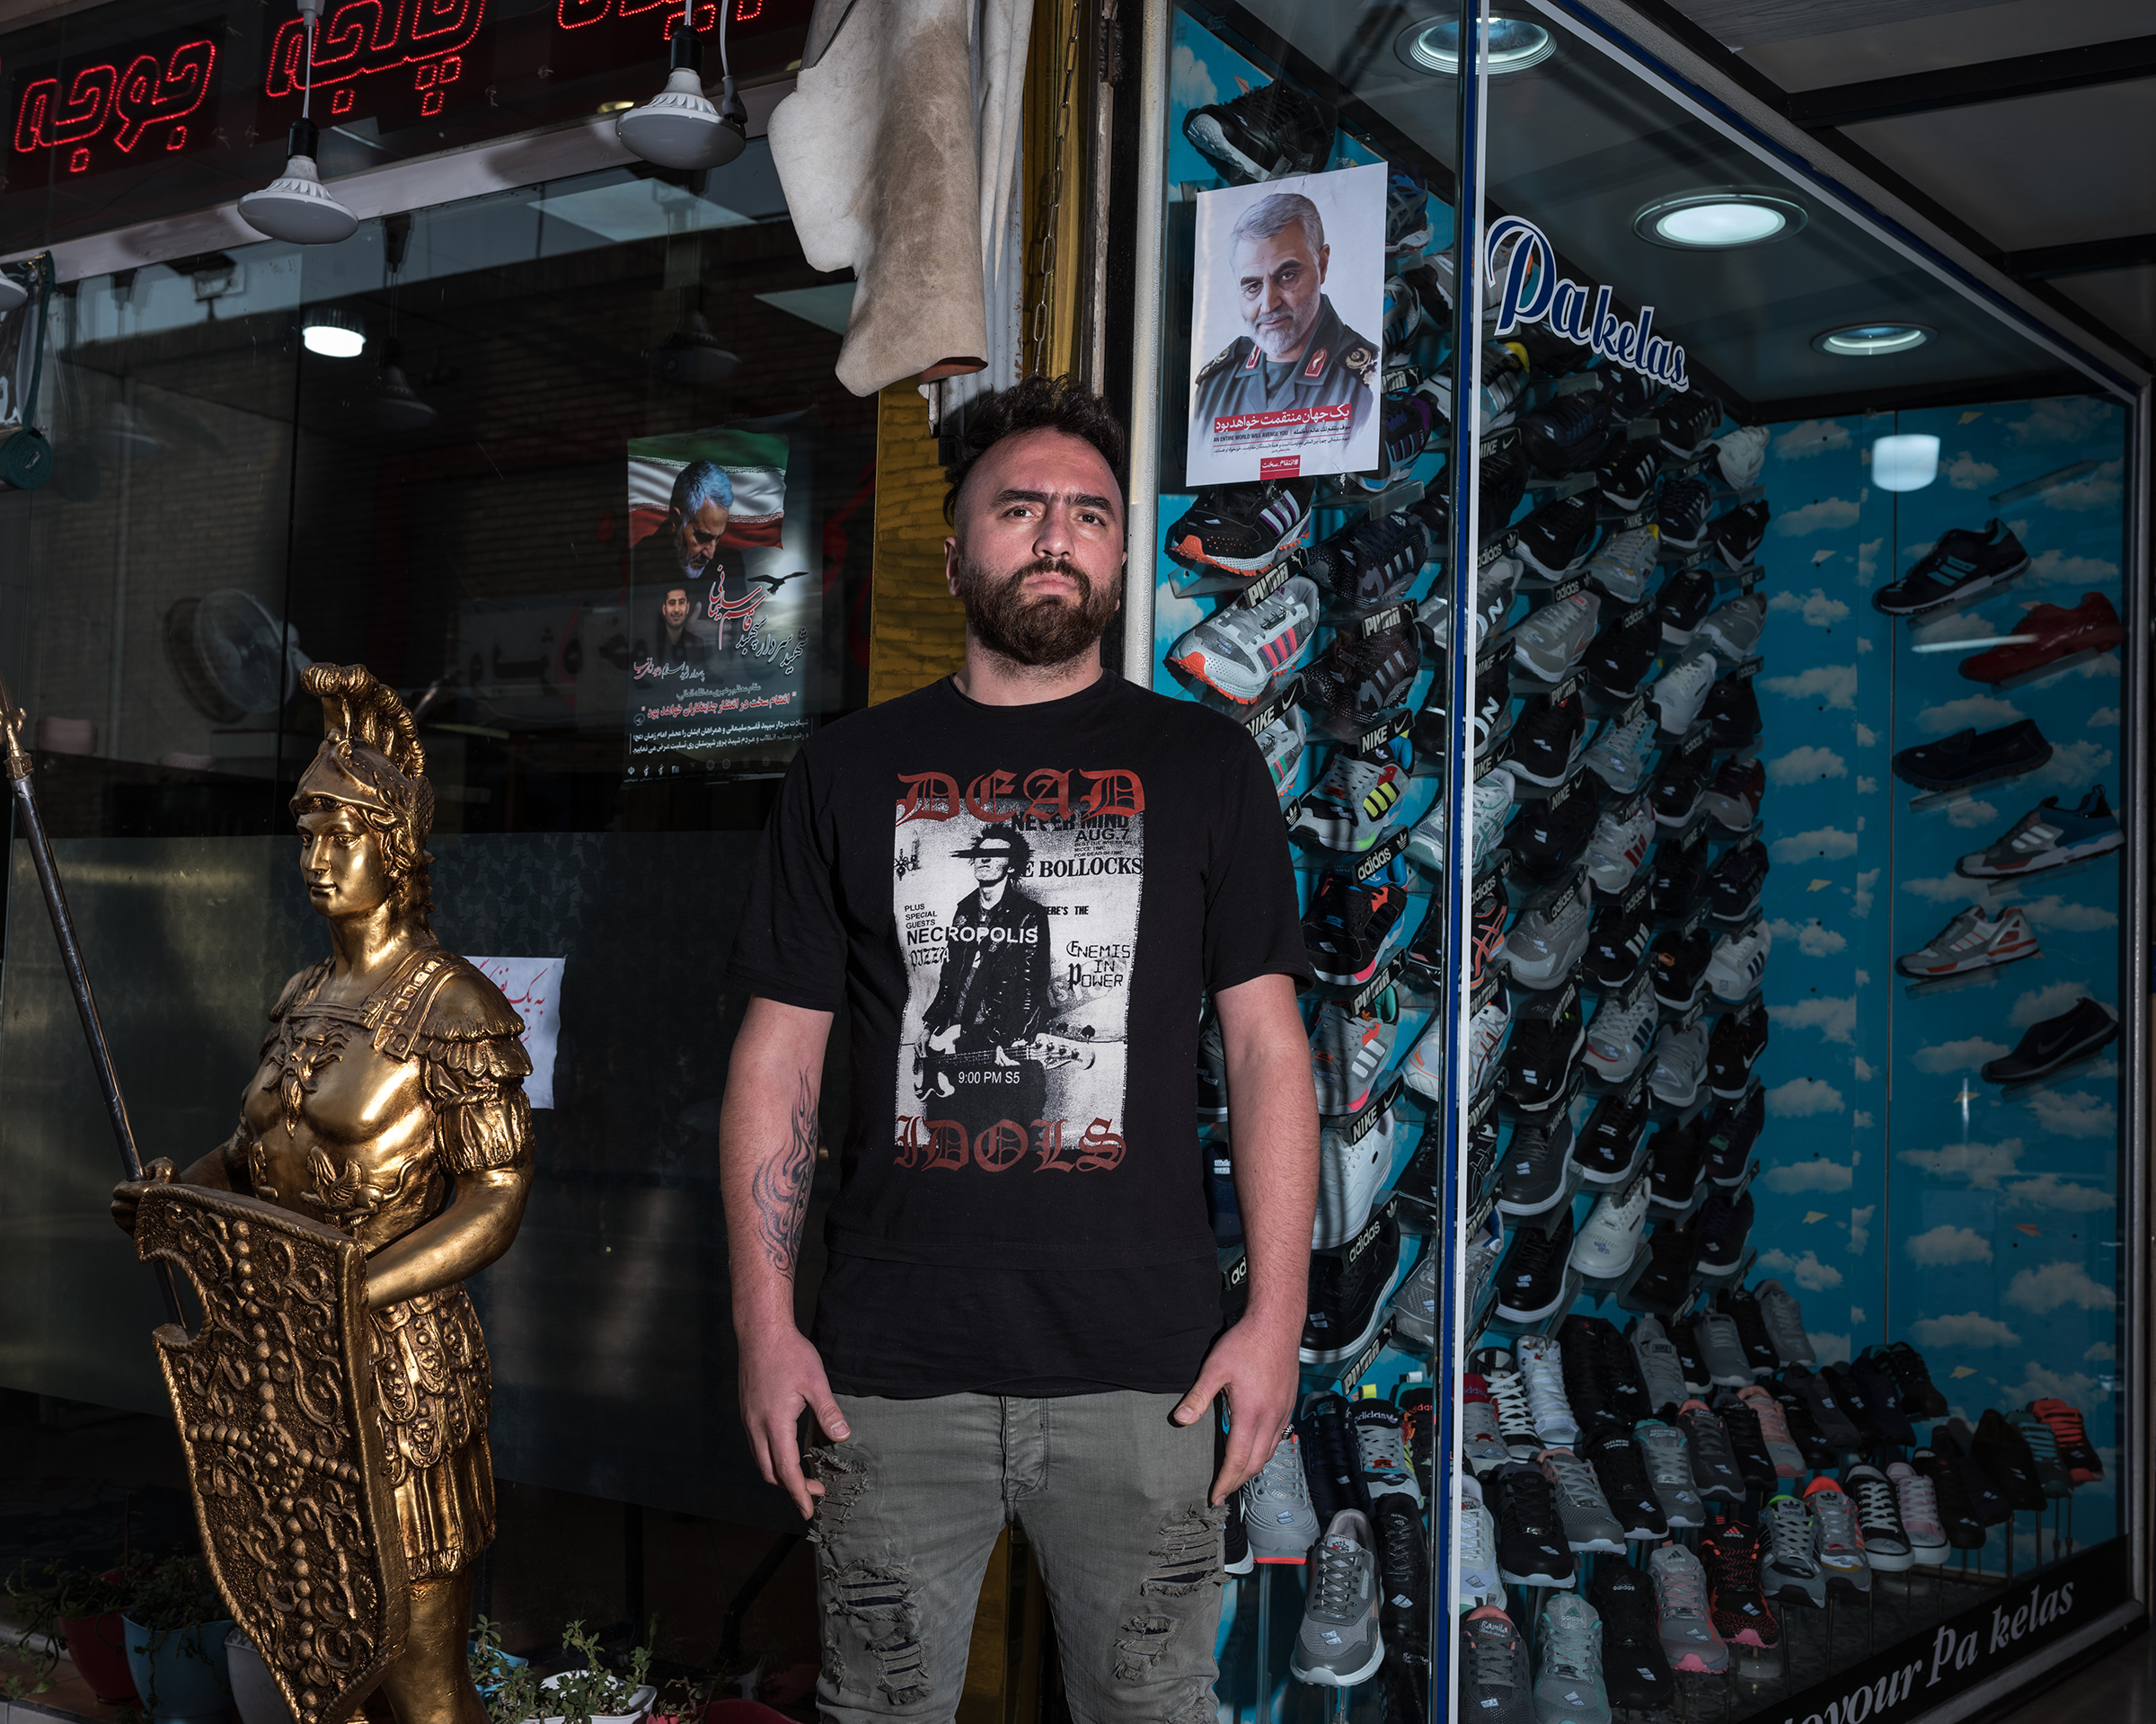 Ali, 29, sells shoes near the shrine to Shah Abdol Azim in Tehran. He hung a poster of Soleimani  out of respect for what he did for Iran.